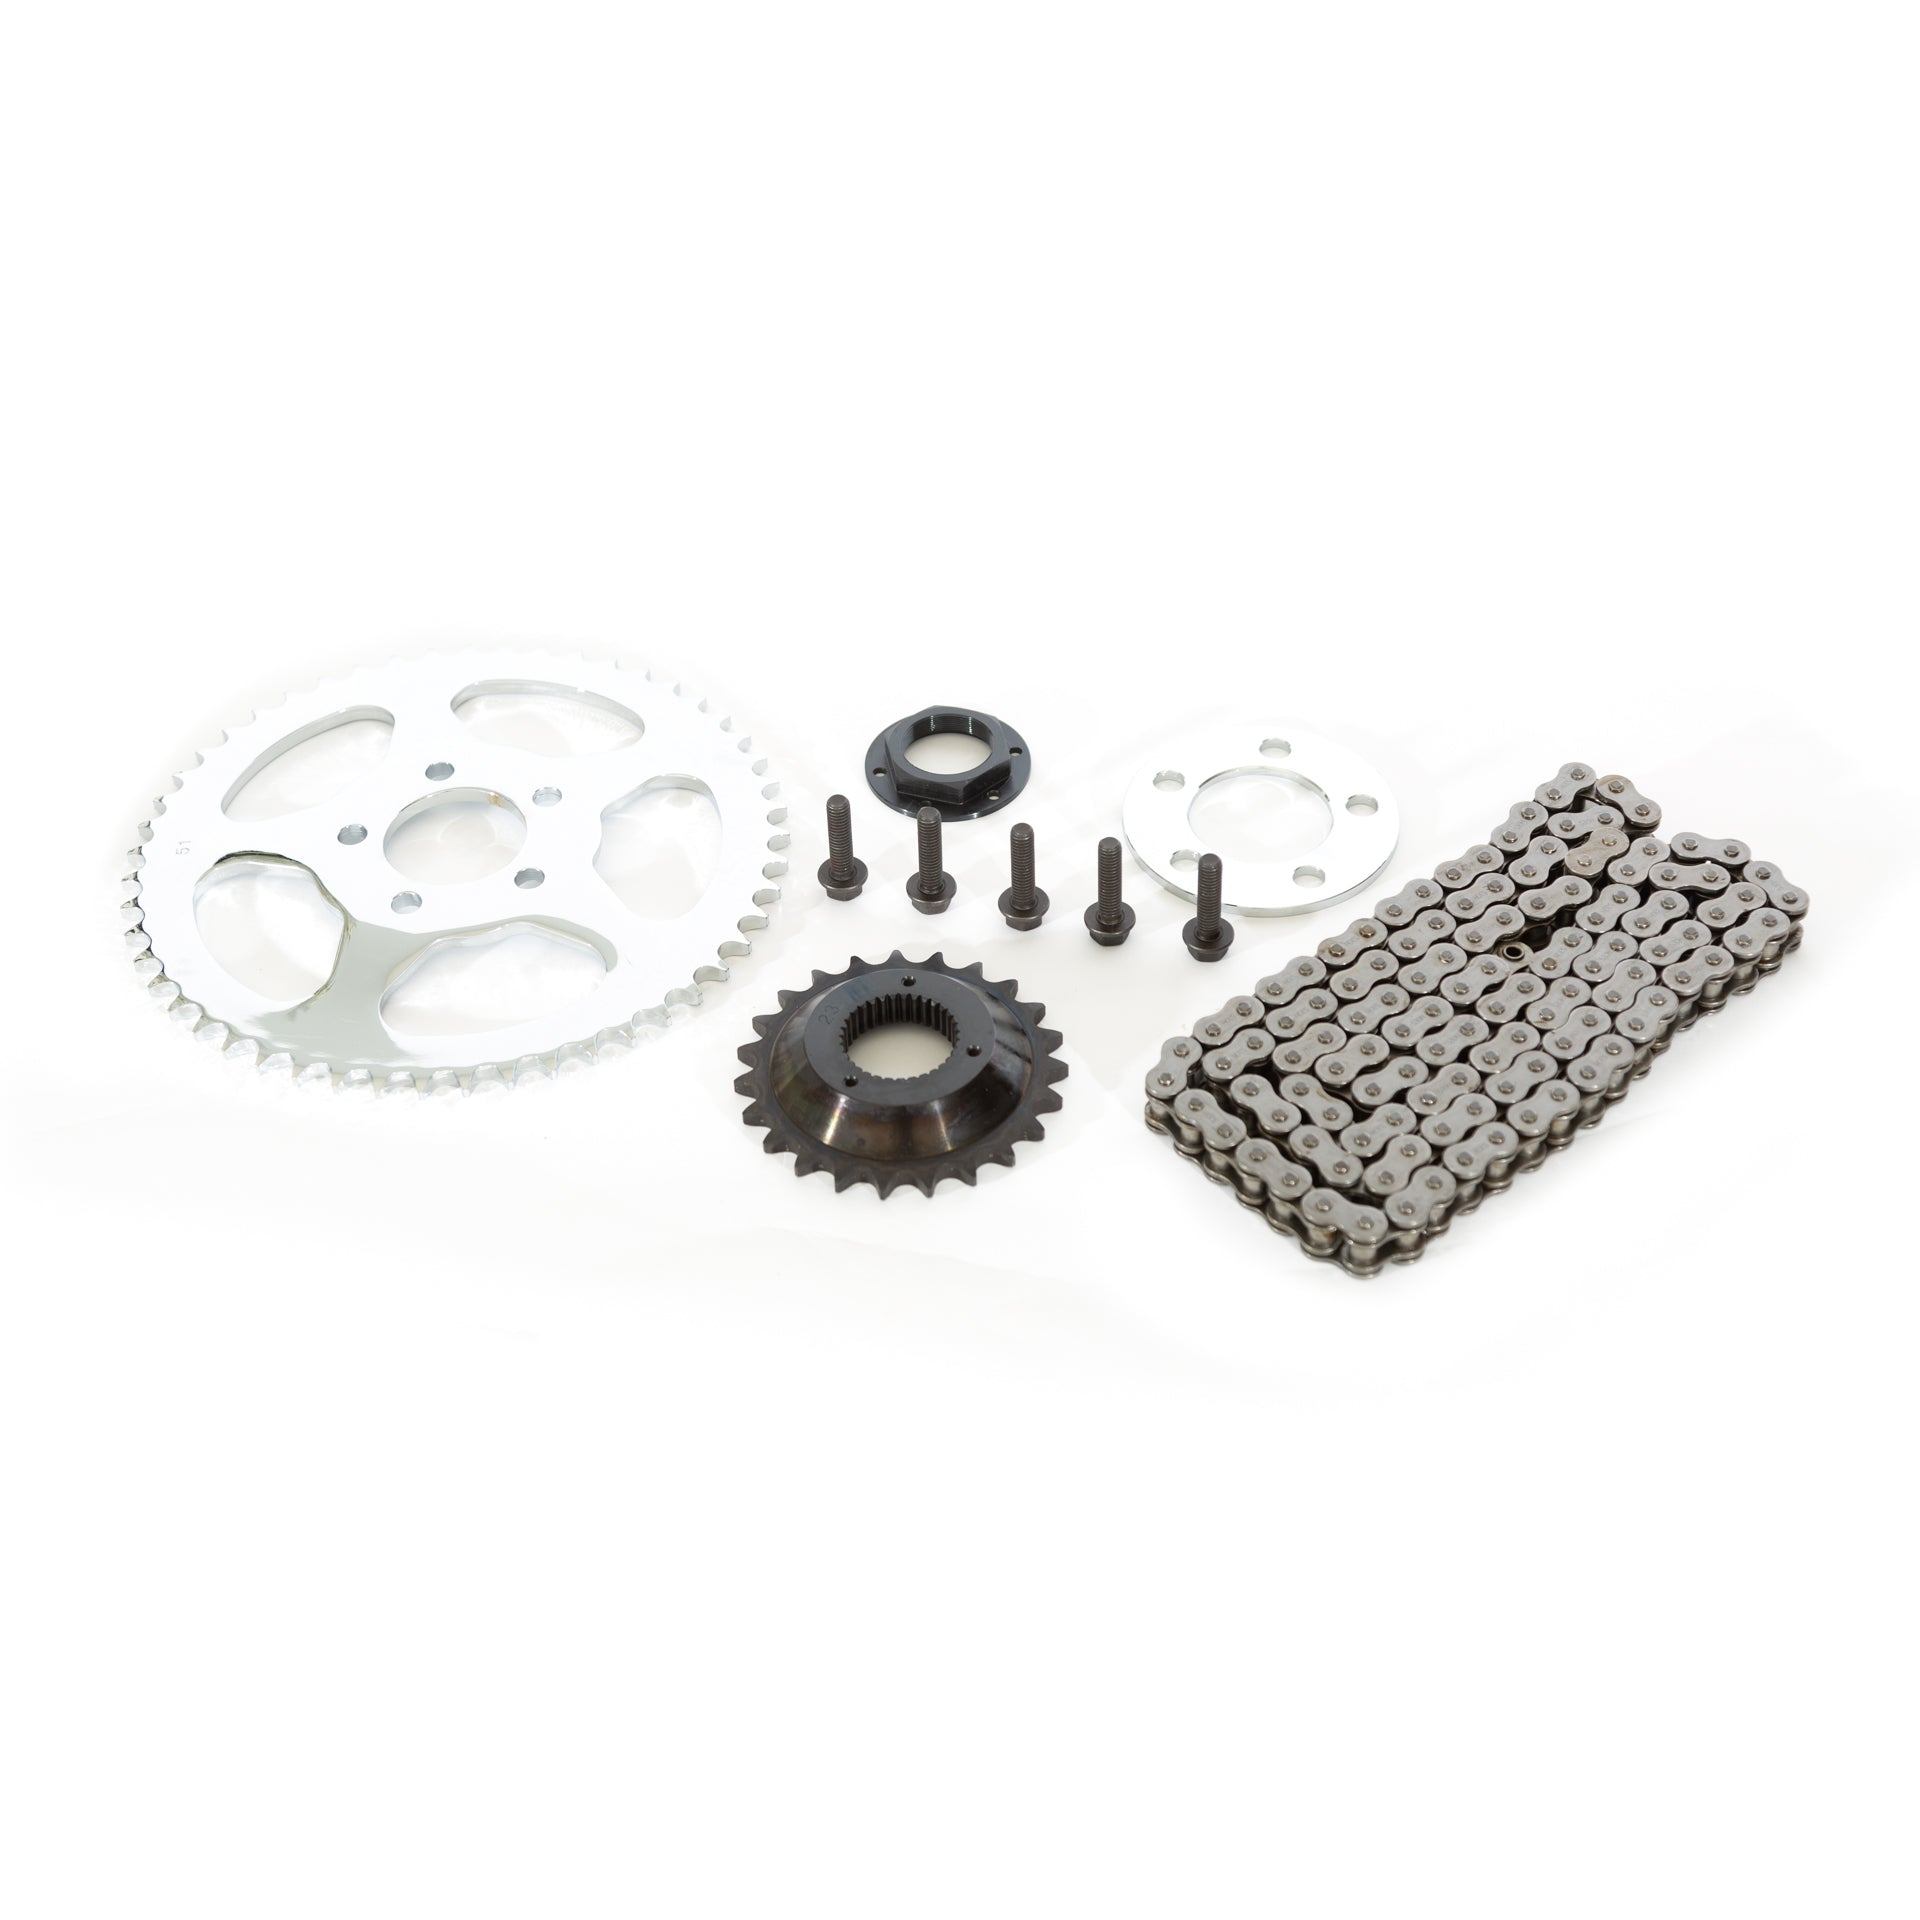 Sportster Chain Drive Conversion Kit